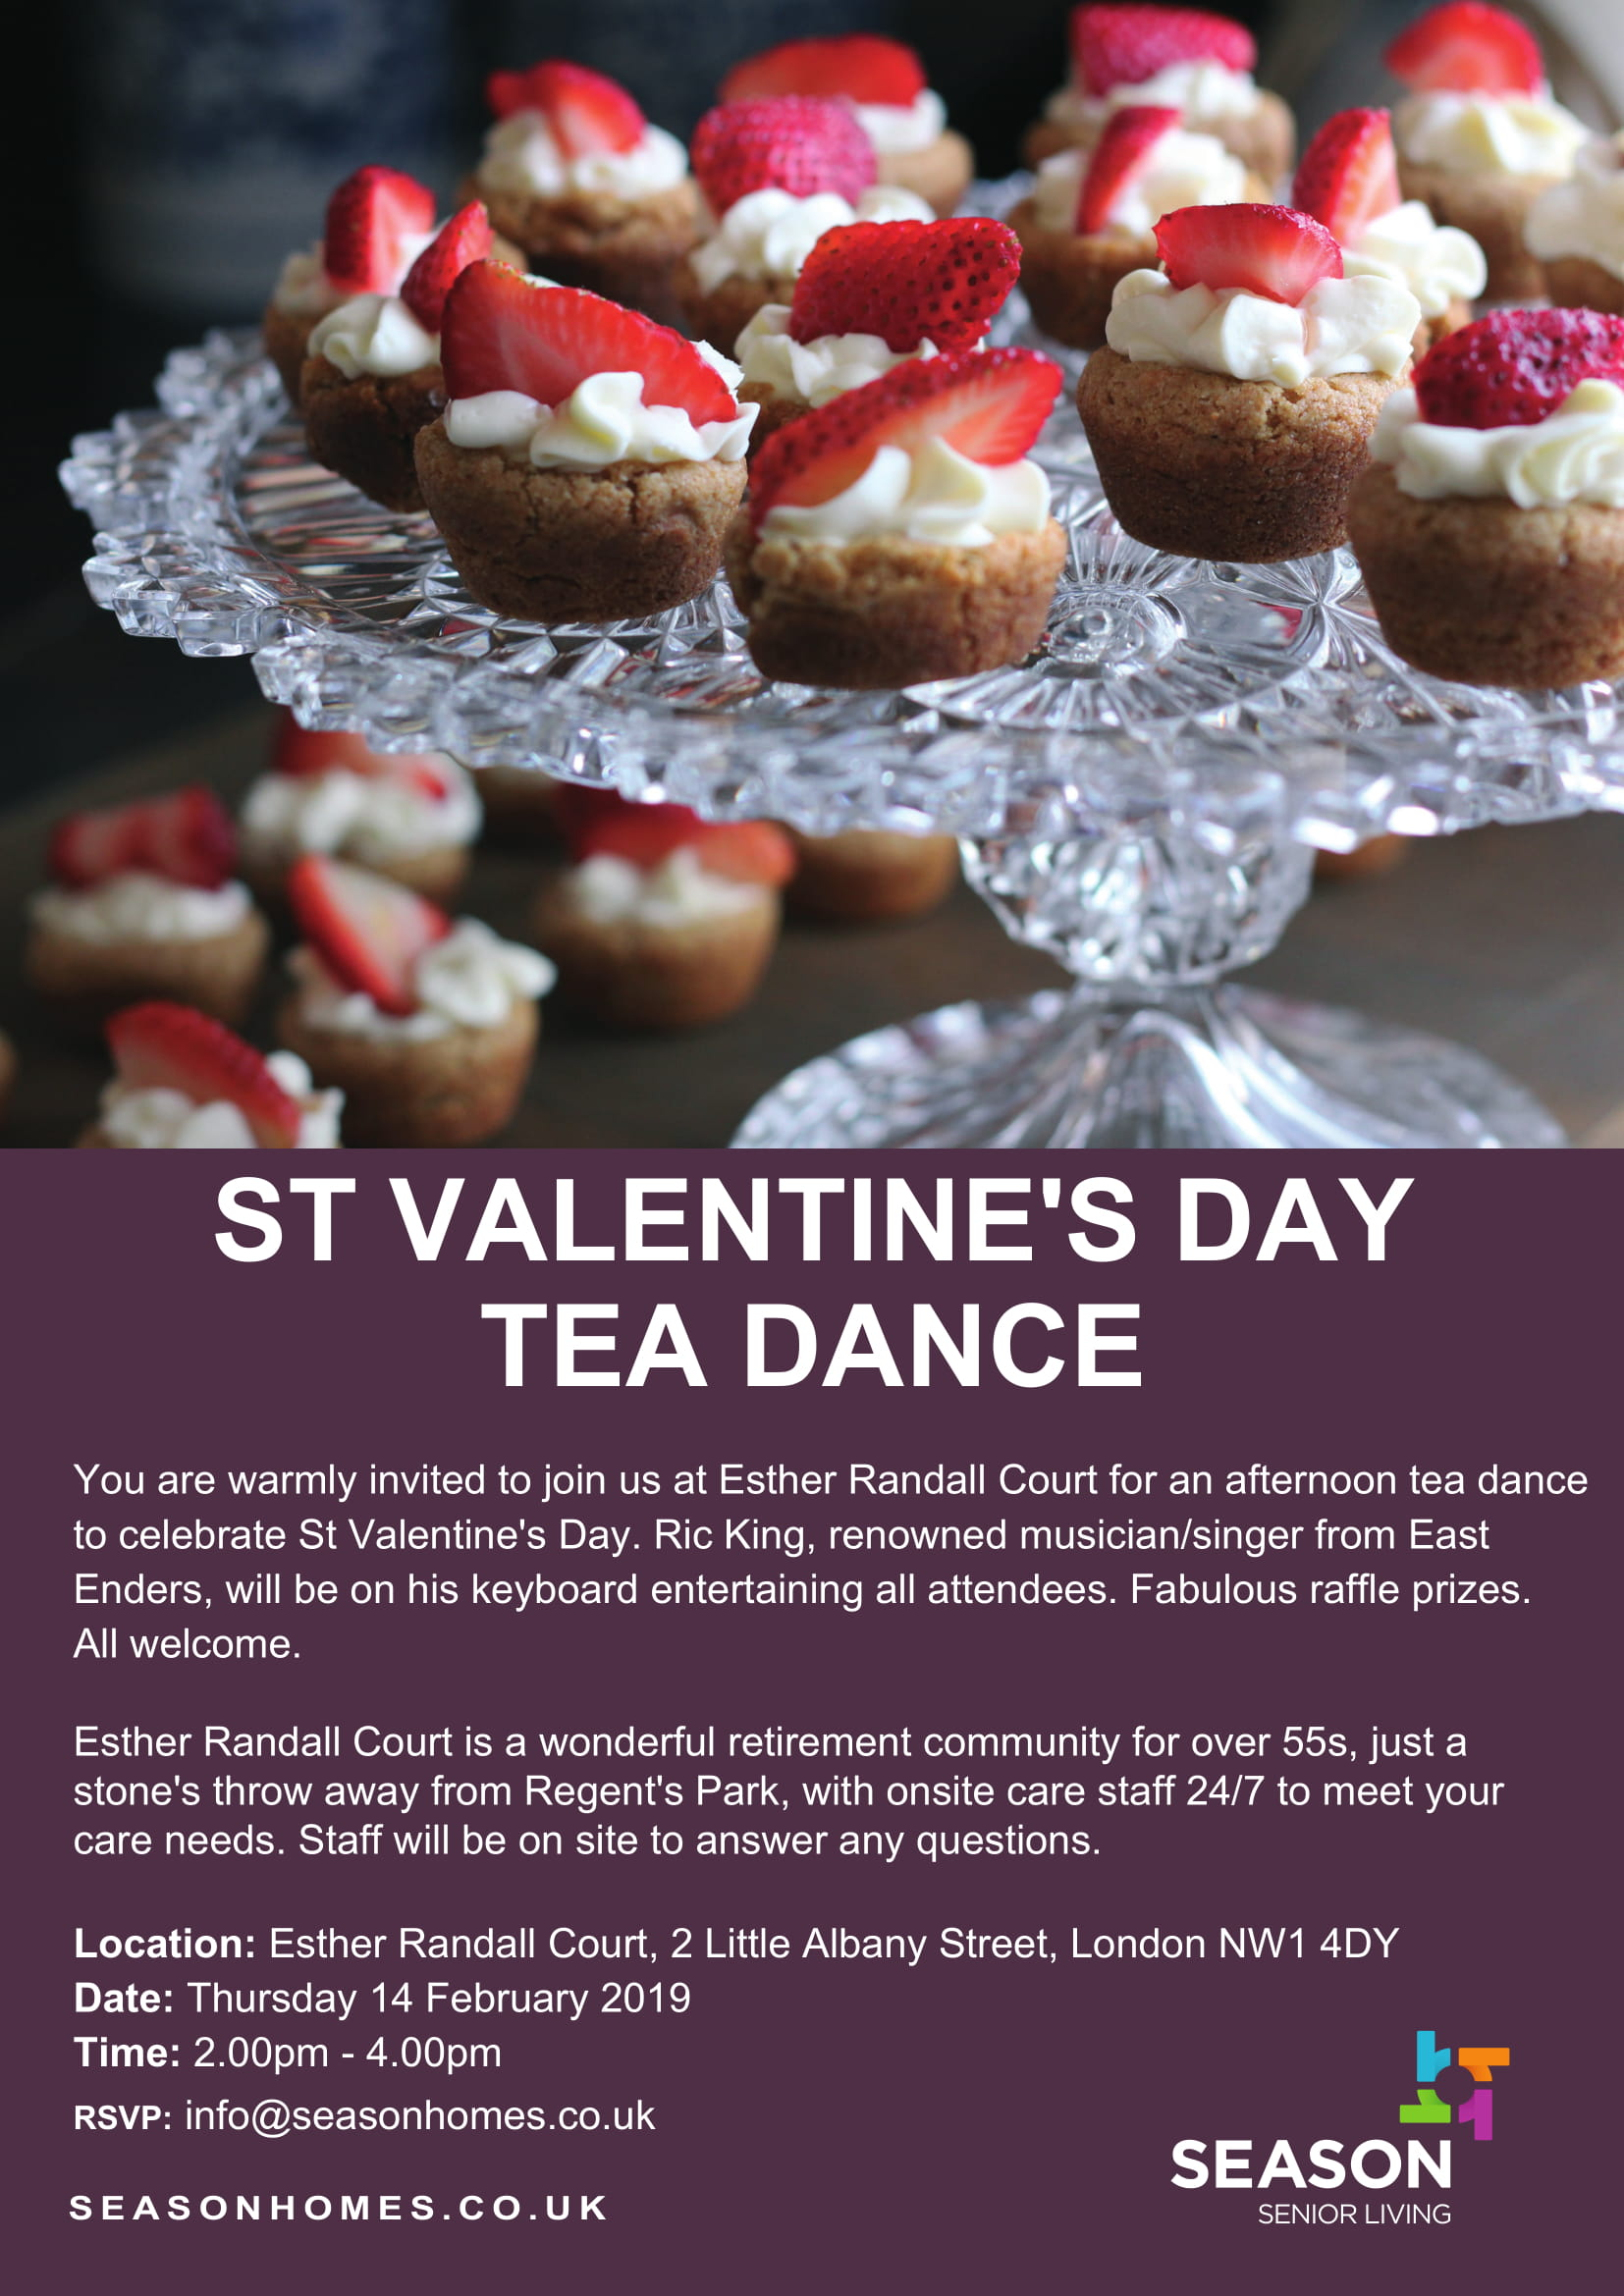 St Valentine's Day Tea Dance